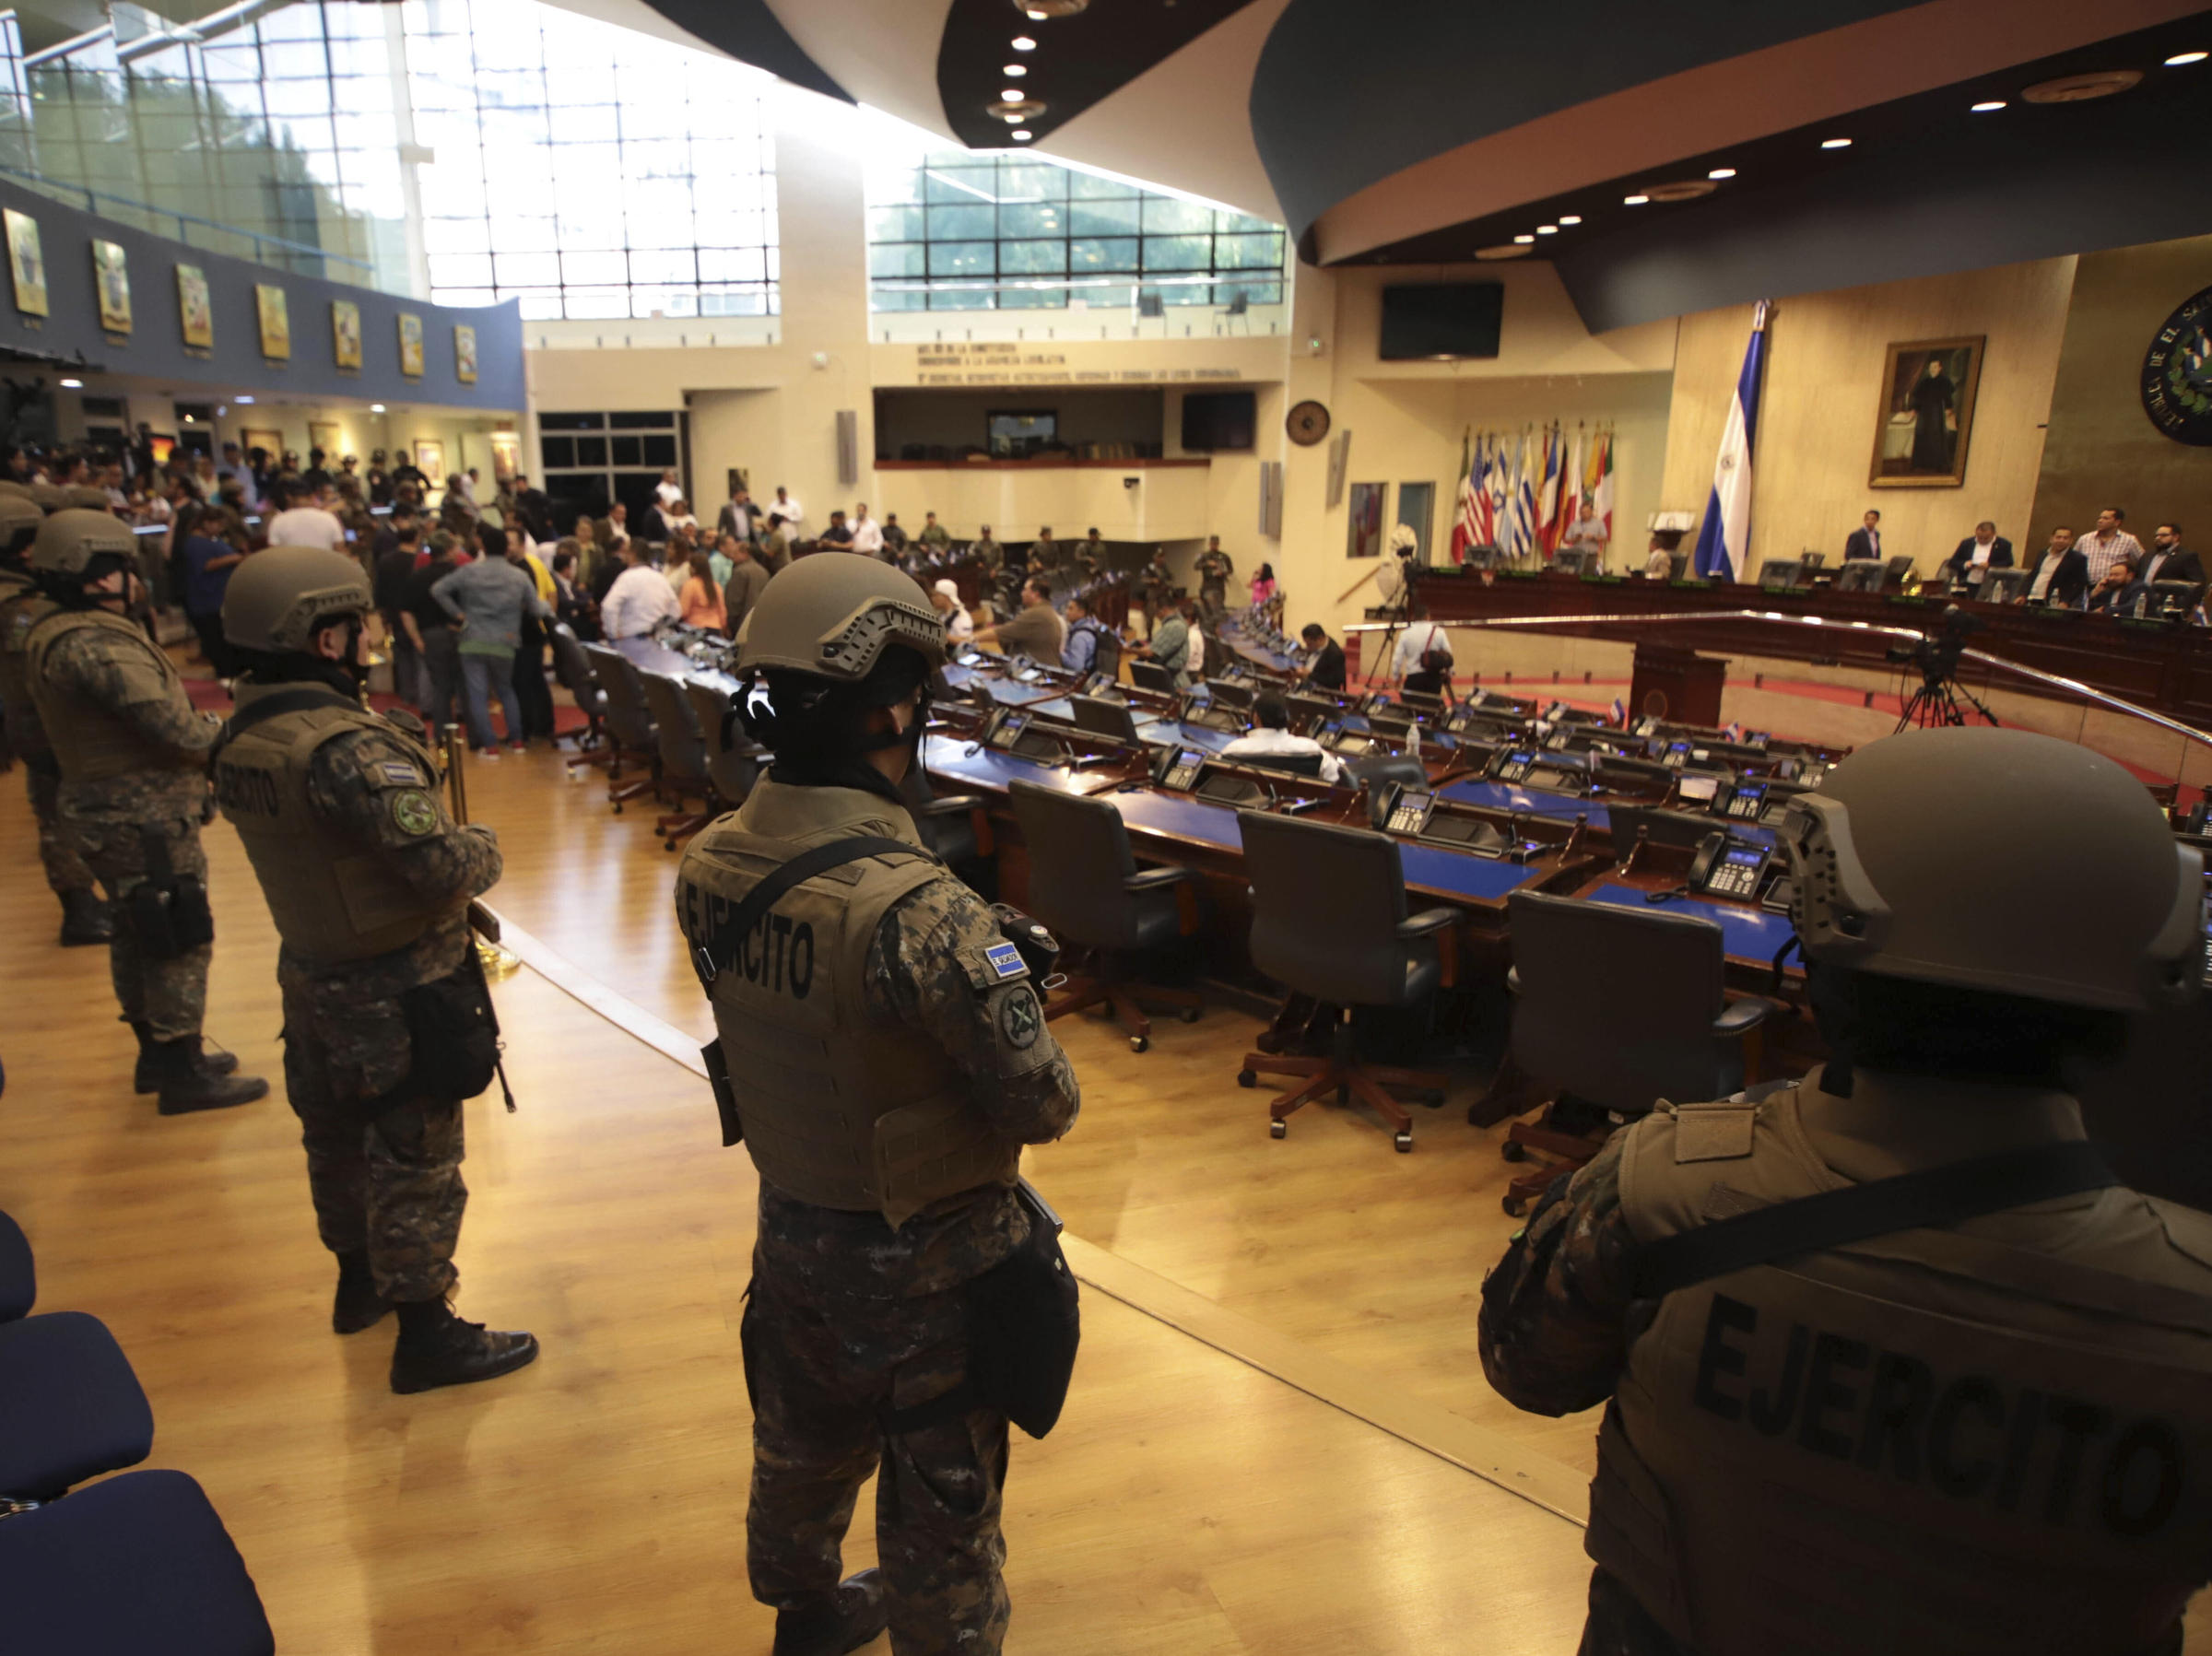 Latin America's Militaries Emerge As Power Brokers, Riot Police And Border Forces